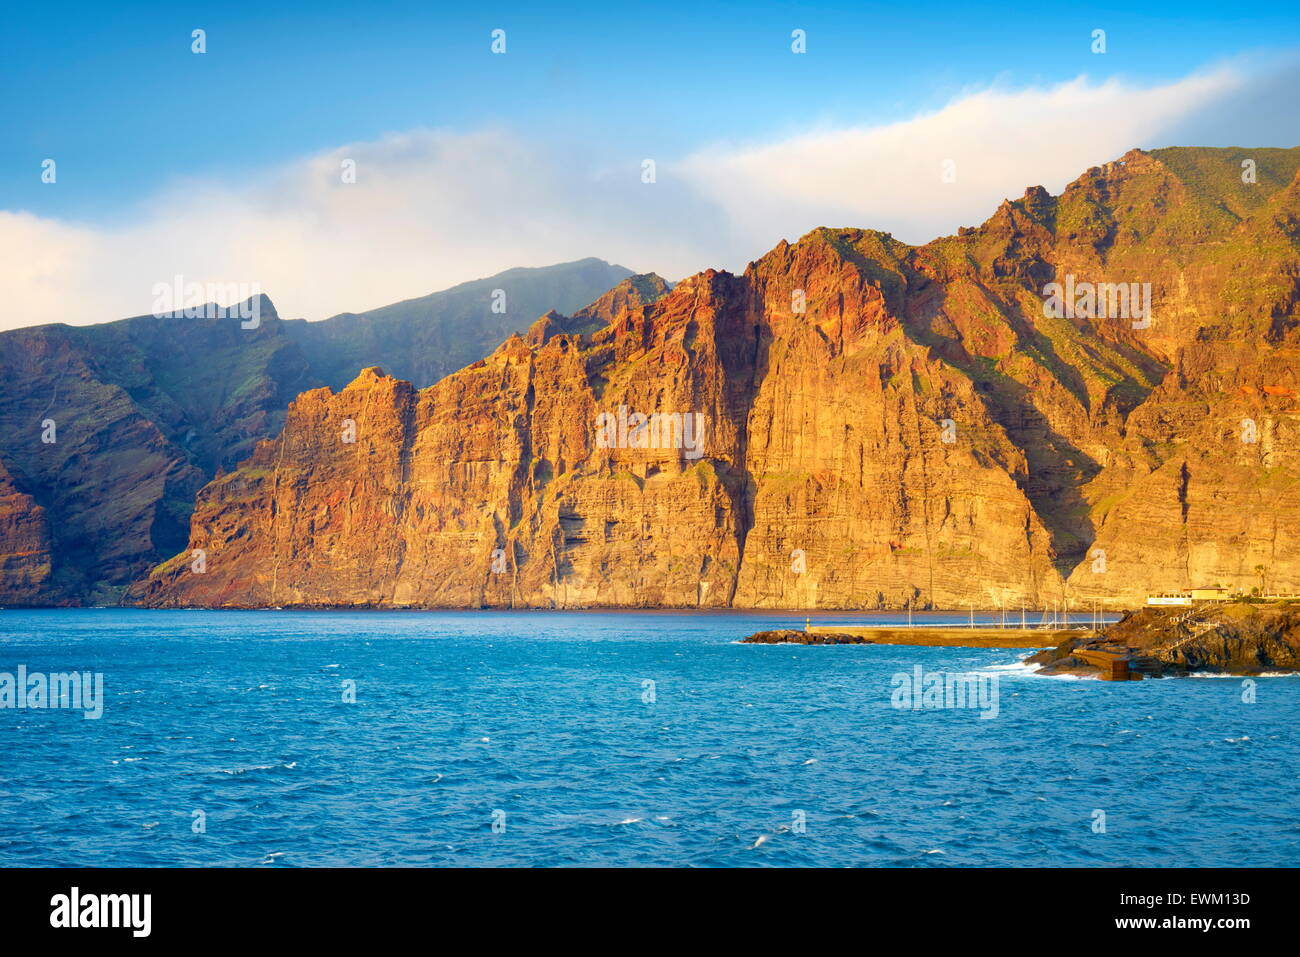 Los Gigantes Cliff, Tenerife, Canary Islands, Spain - Stock Image